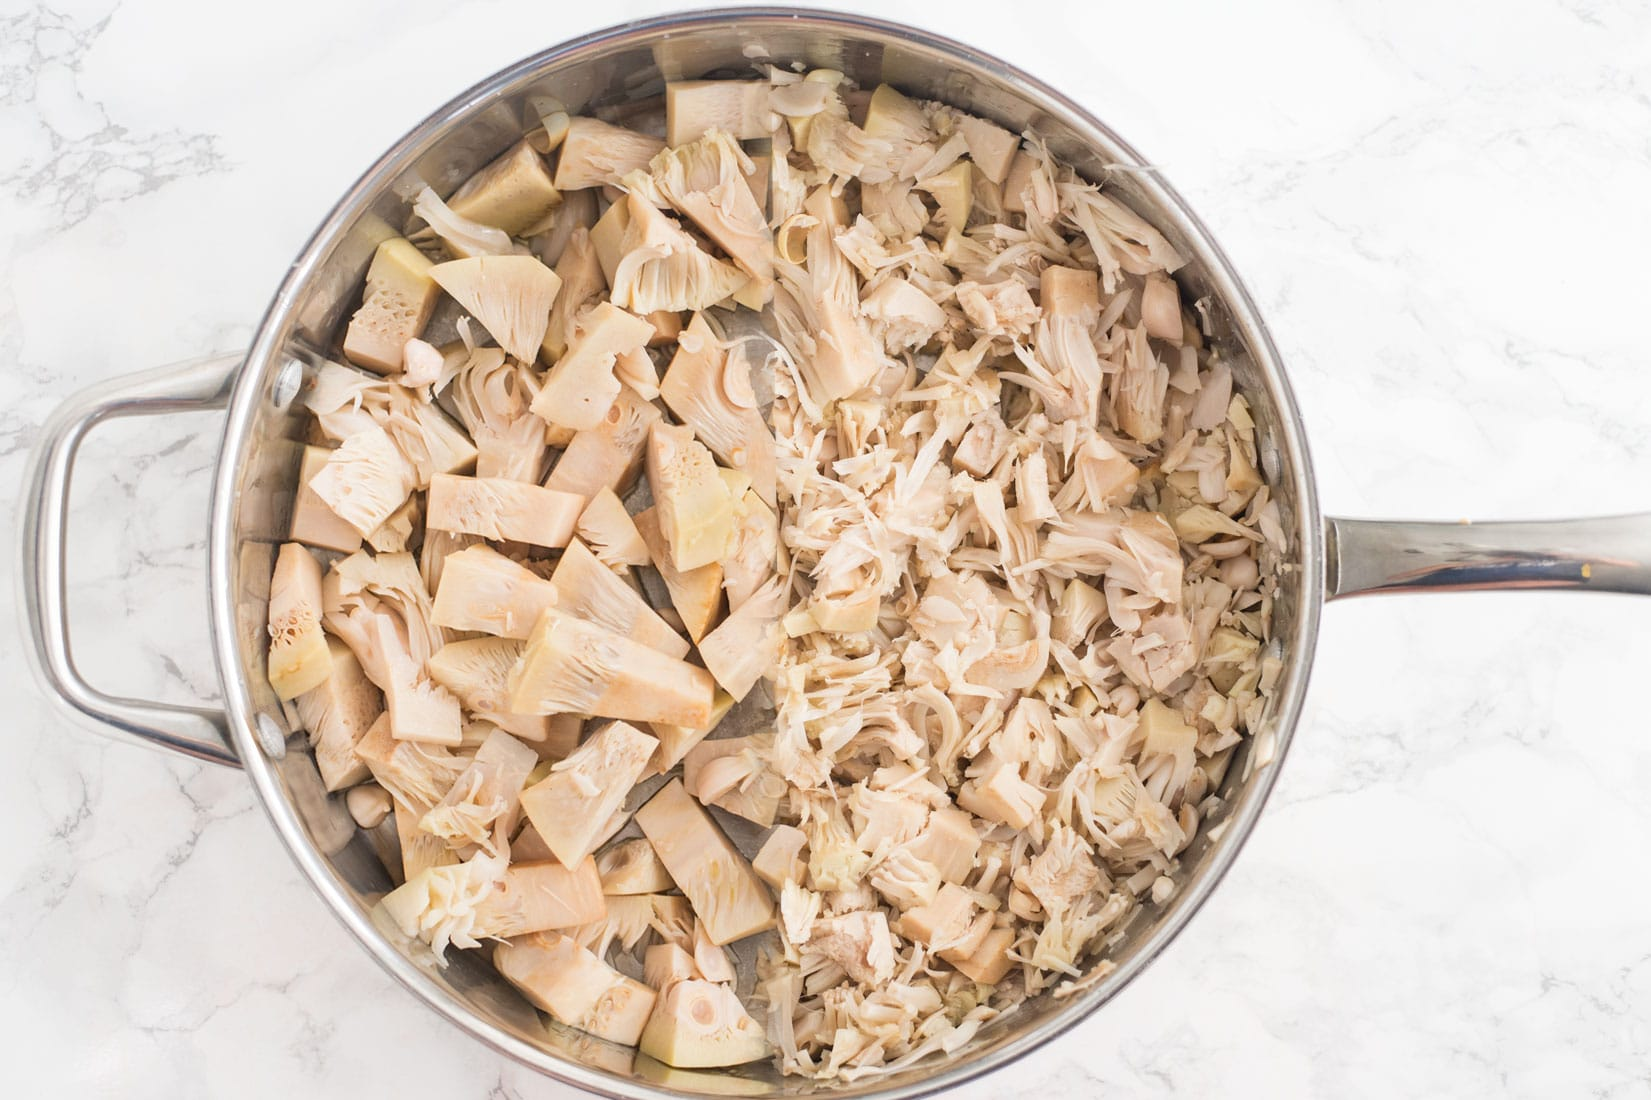 canned jackfruit in large sautee pan on marble counter